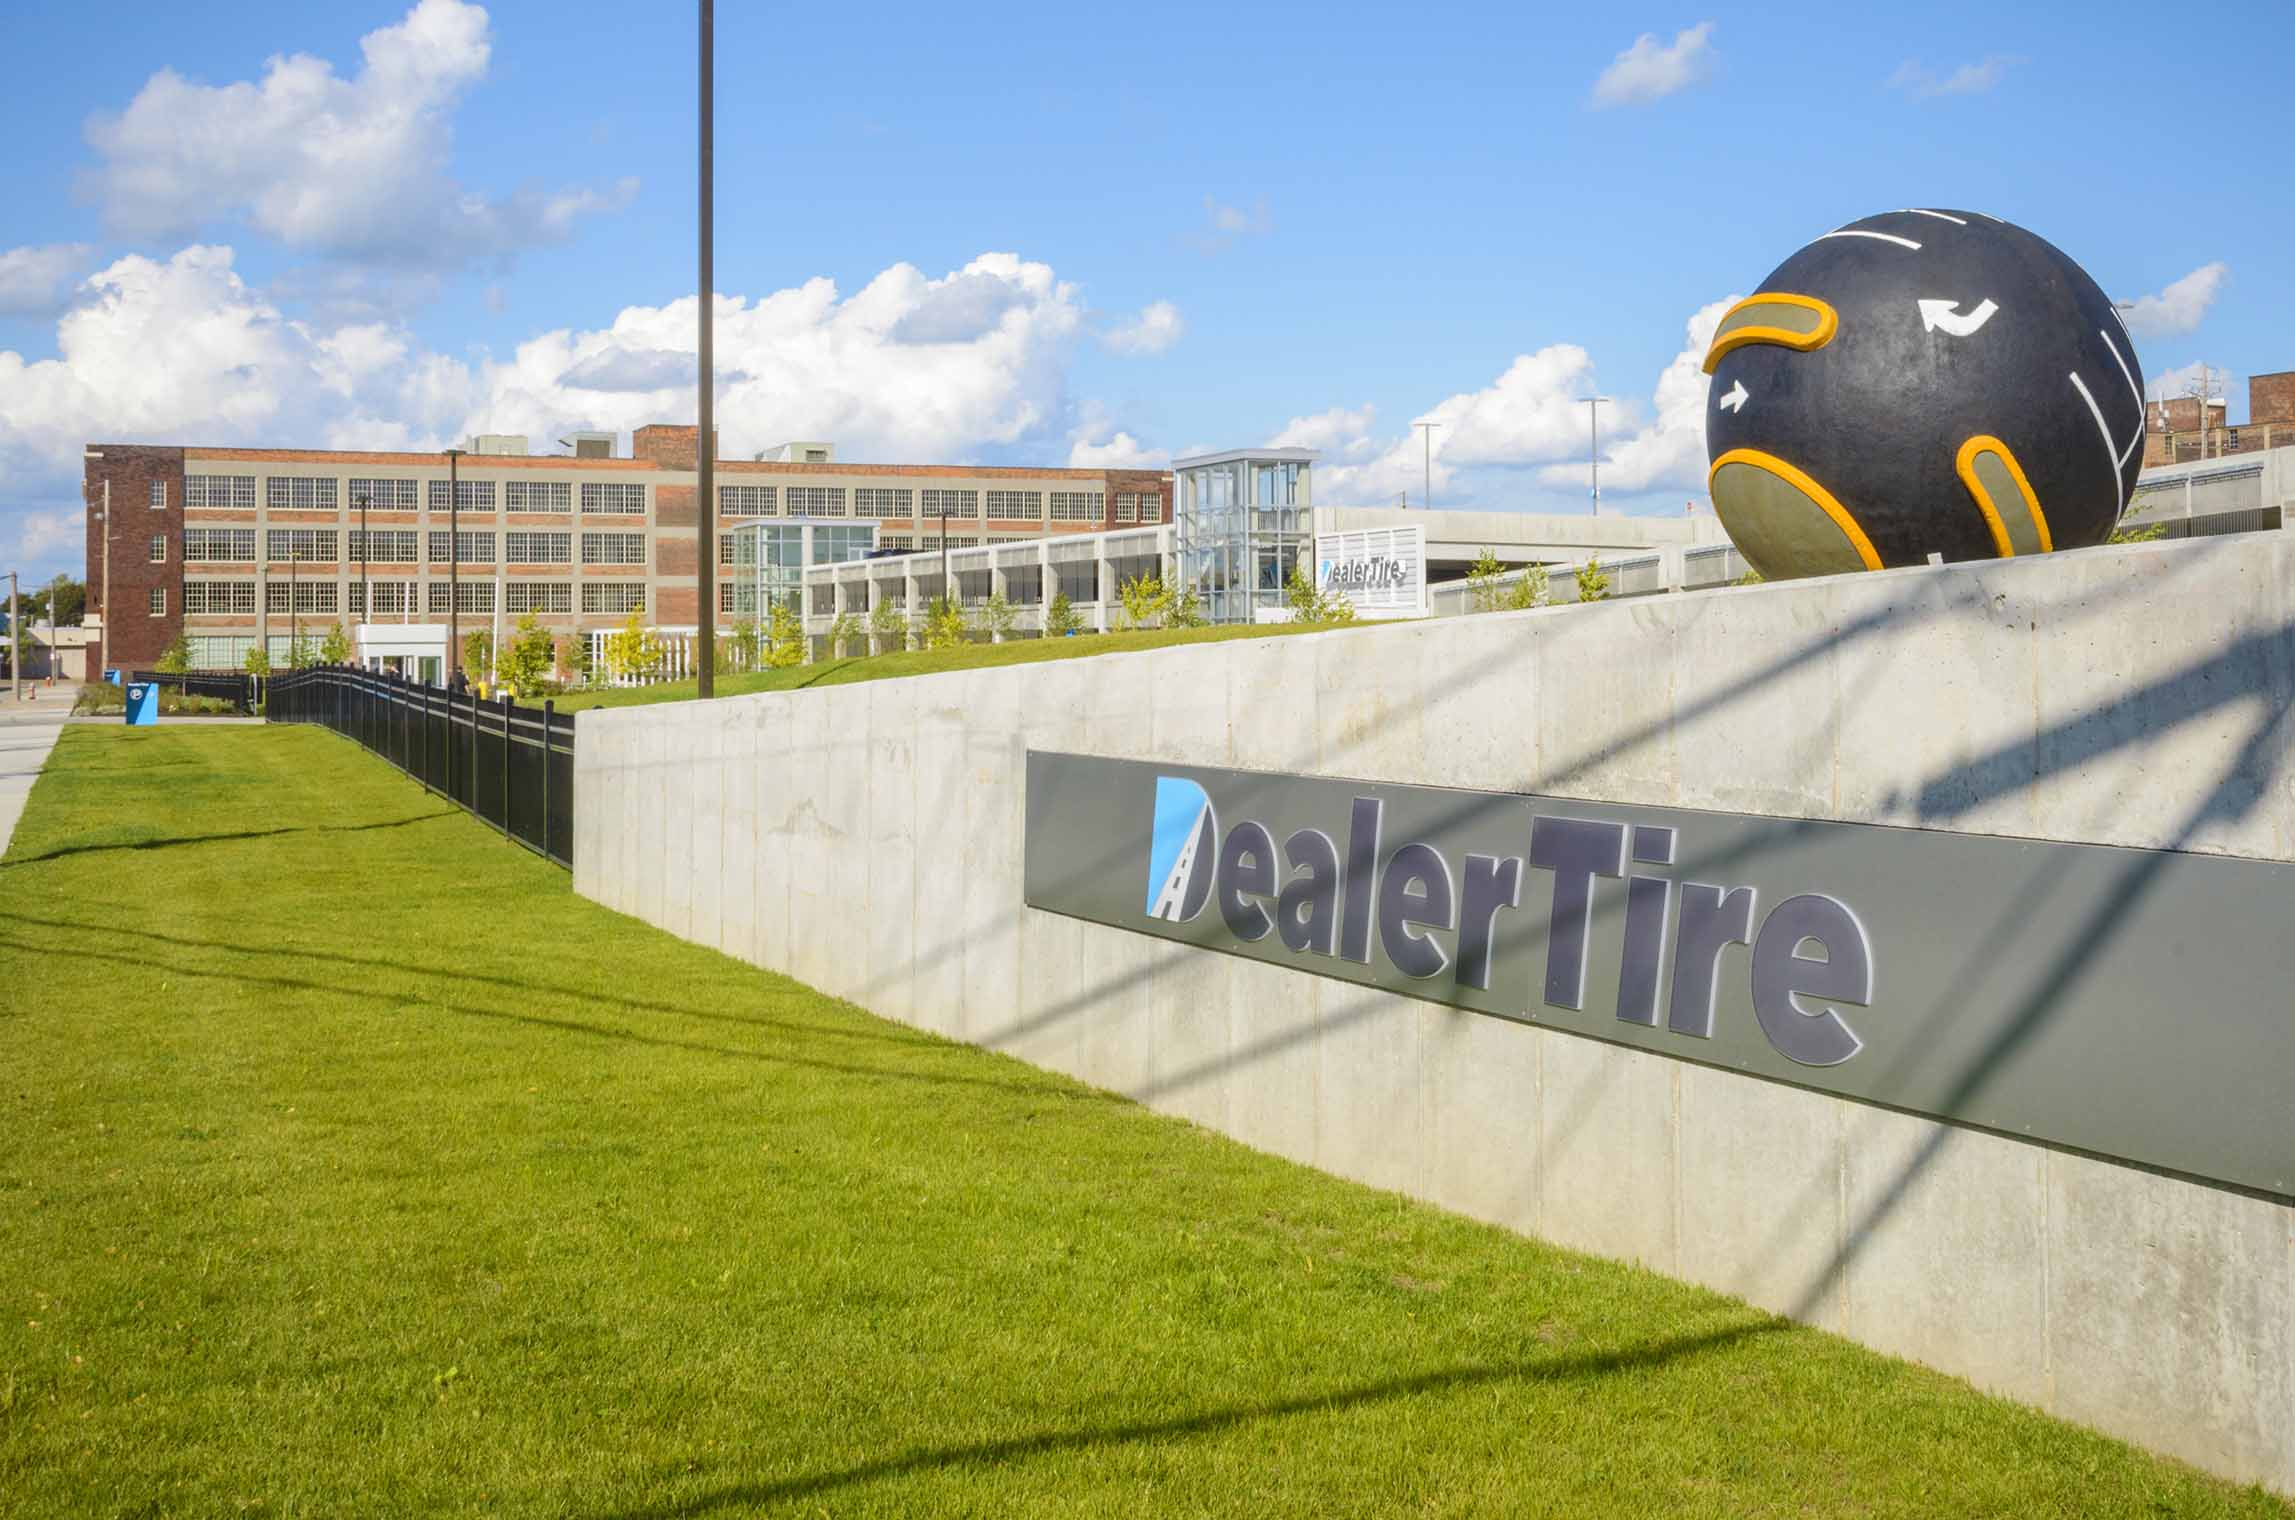 Dealer Tire Announces Significant Investment by Bain Capital Private Equity